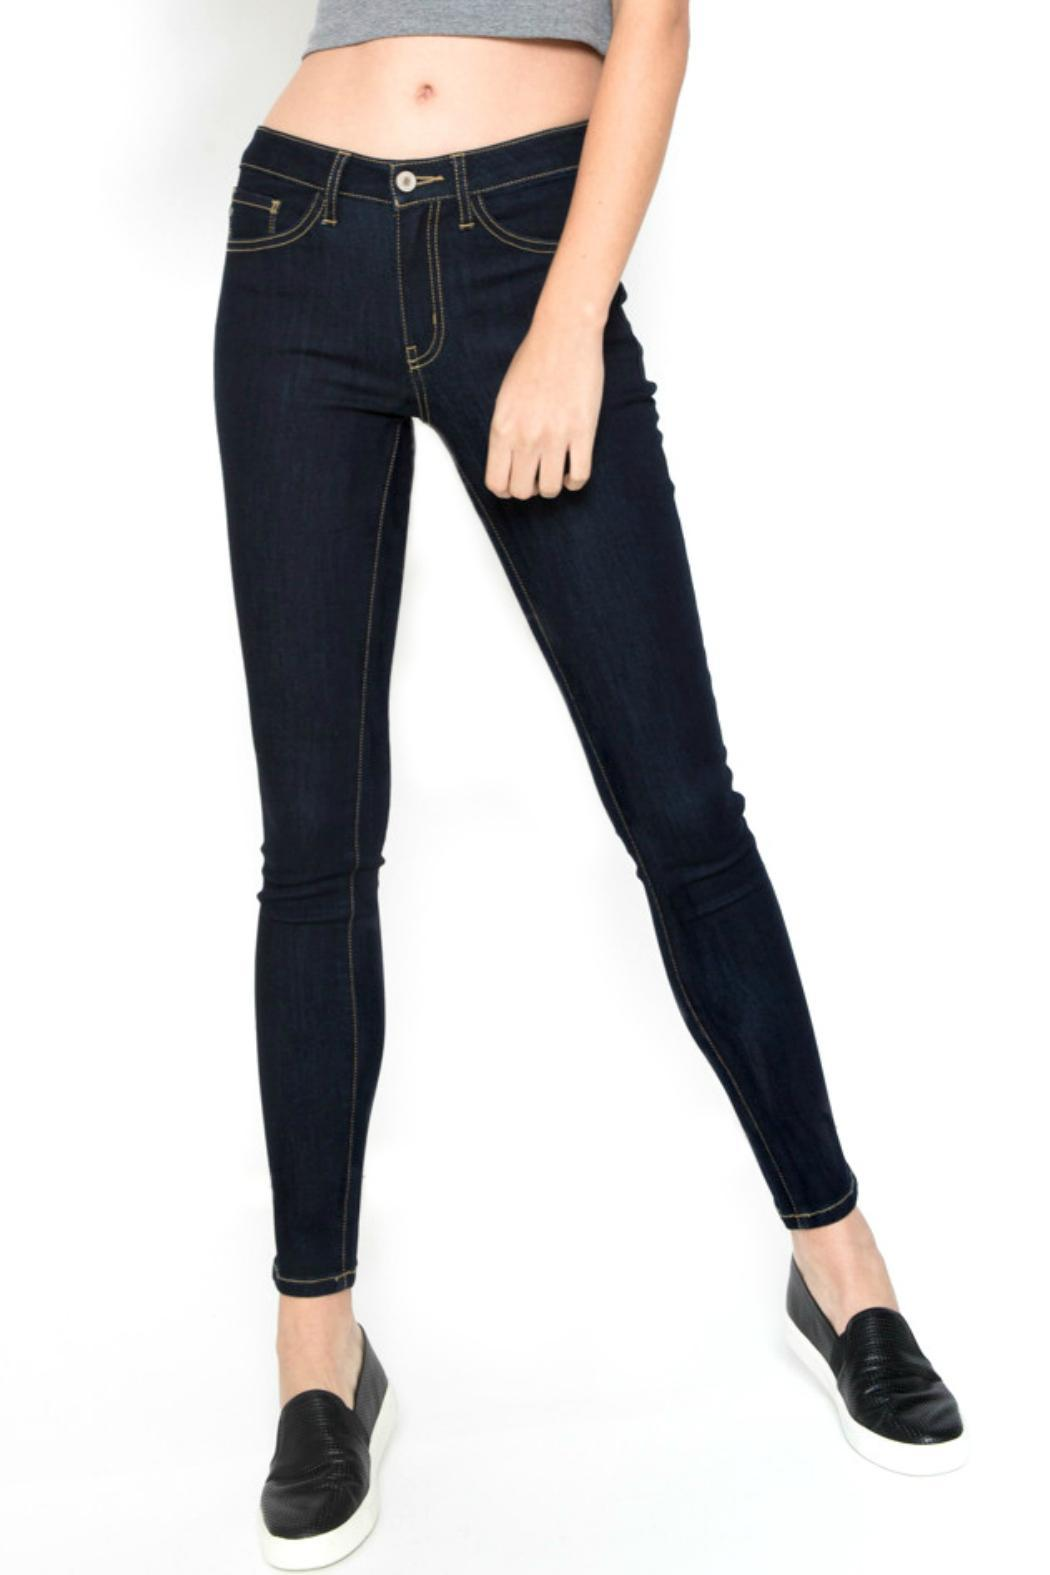 KanCan Dark Wash Jeans - Side Cropped Image